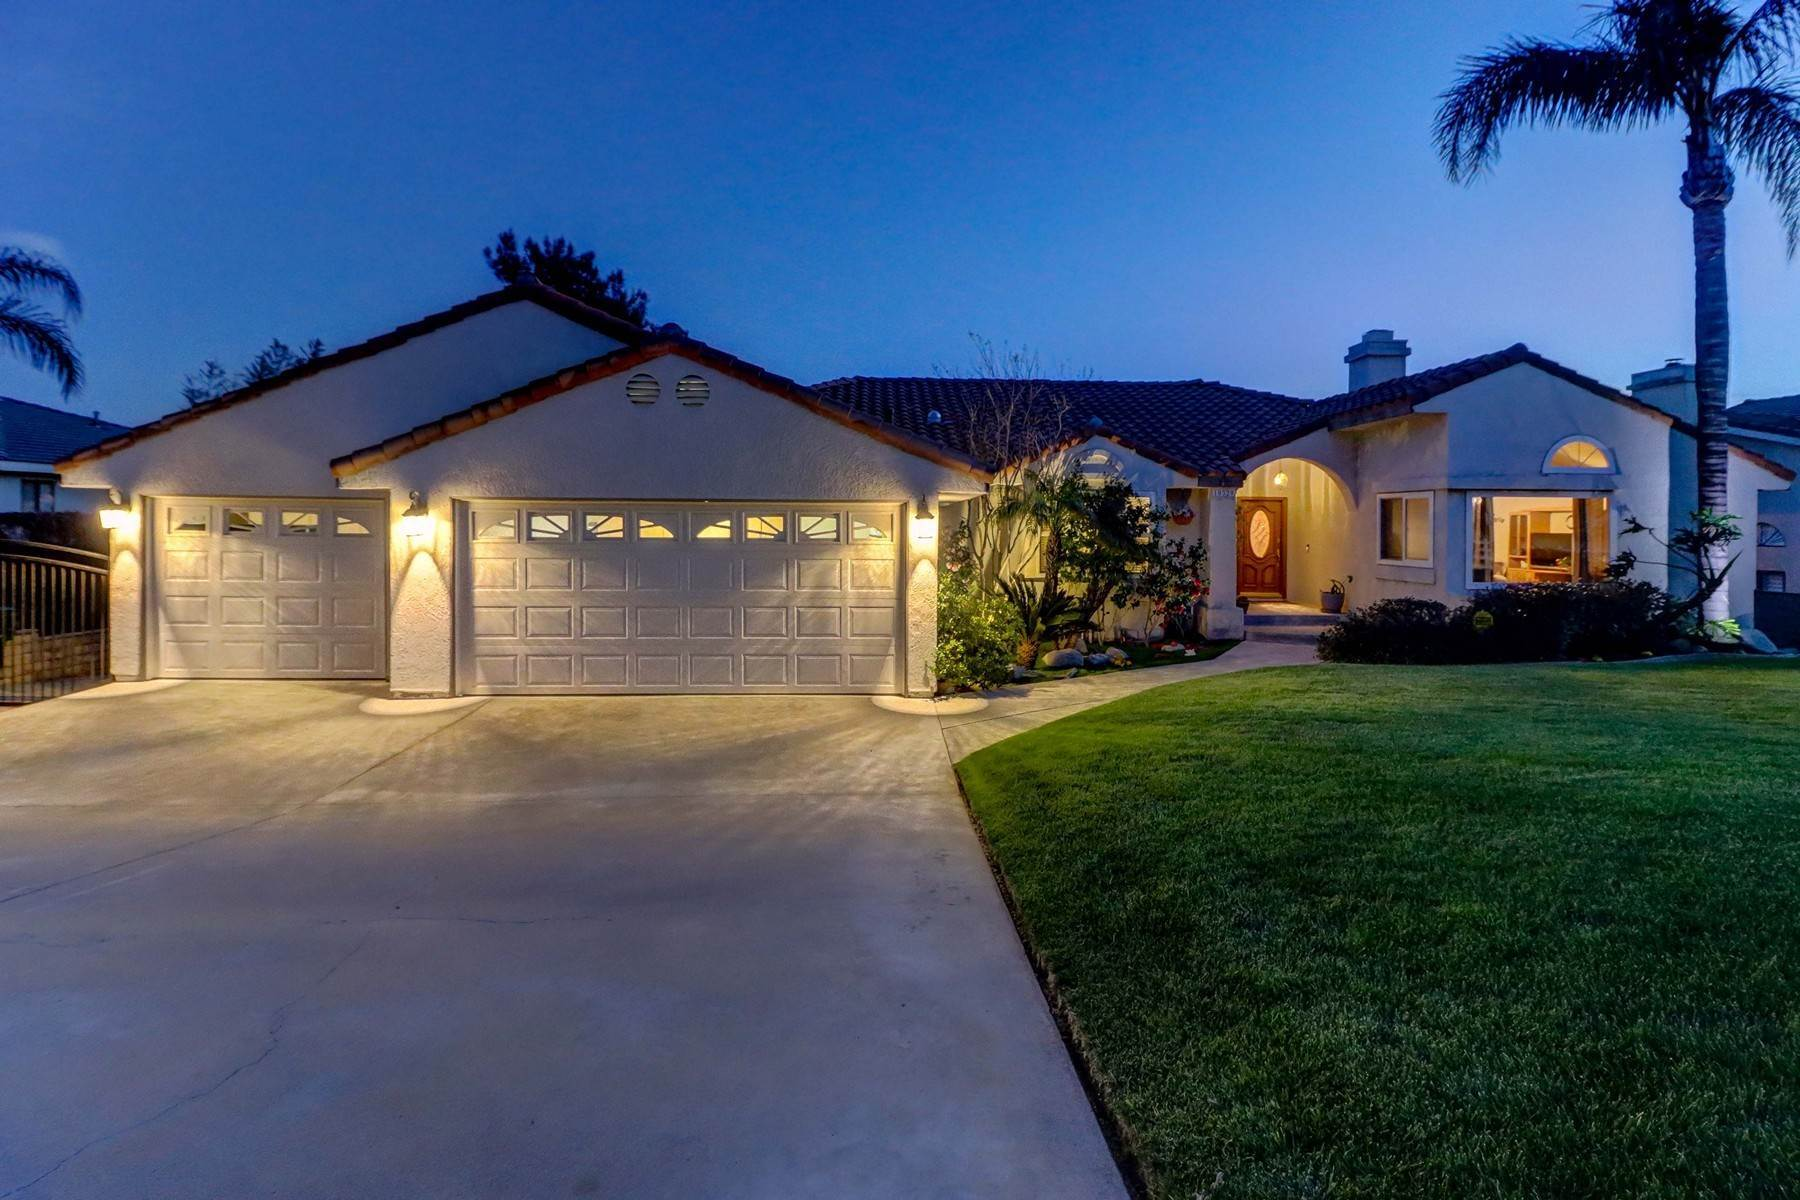 50. Single Family Homes for Sale at 10329 Vista Grove Street, Rancho Cucamonga, CA 91737 10329 Vista Grove Street Rancho Cucamonga, California 91737 United States